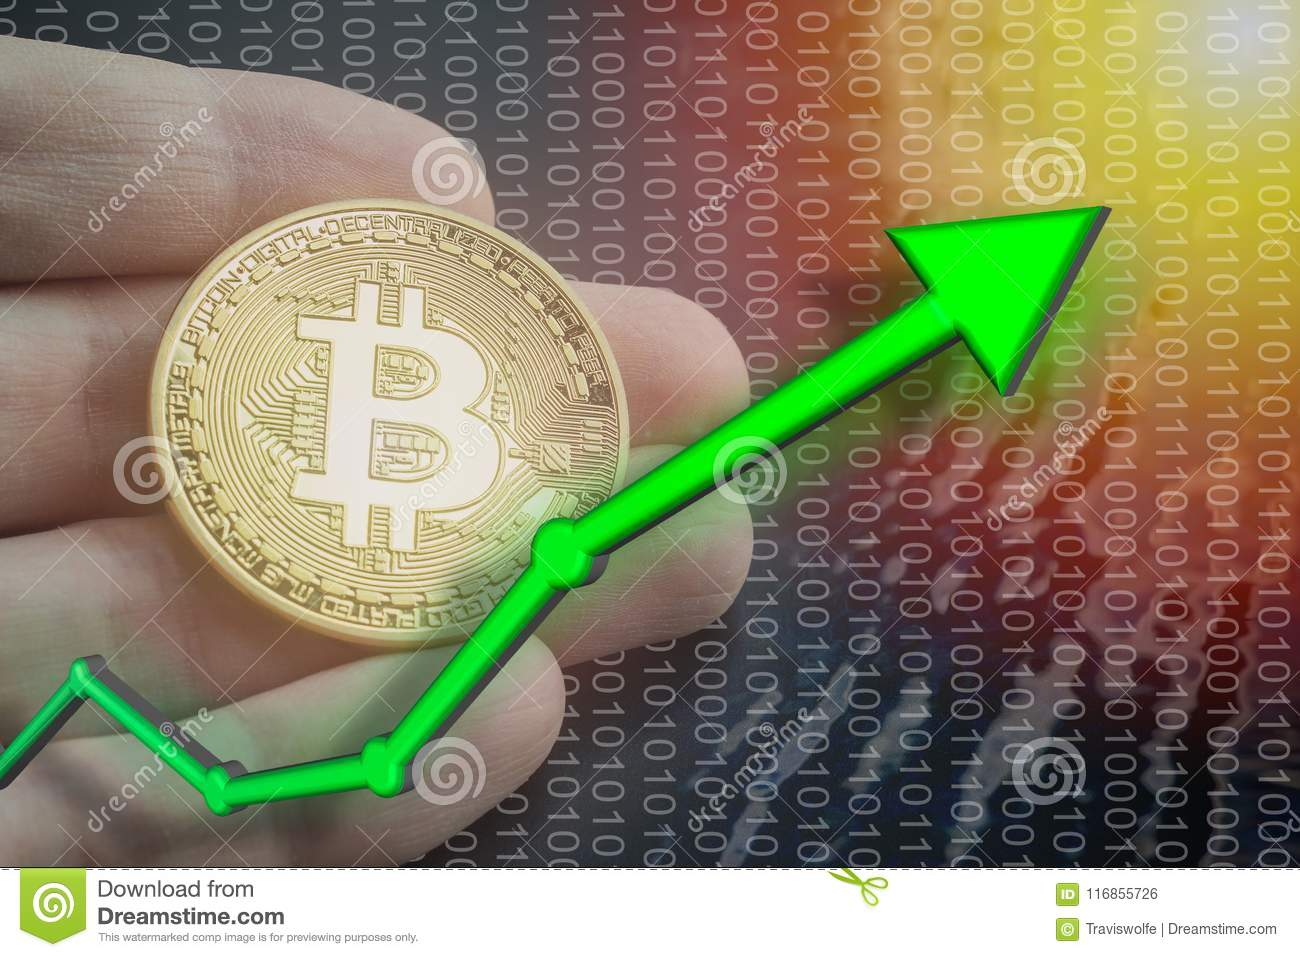 Light With Bitcoin Price Rising And Increase Value Of BTC